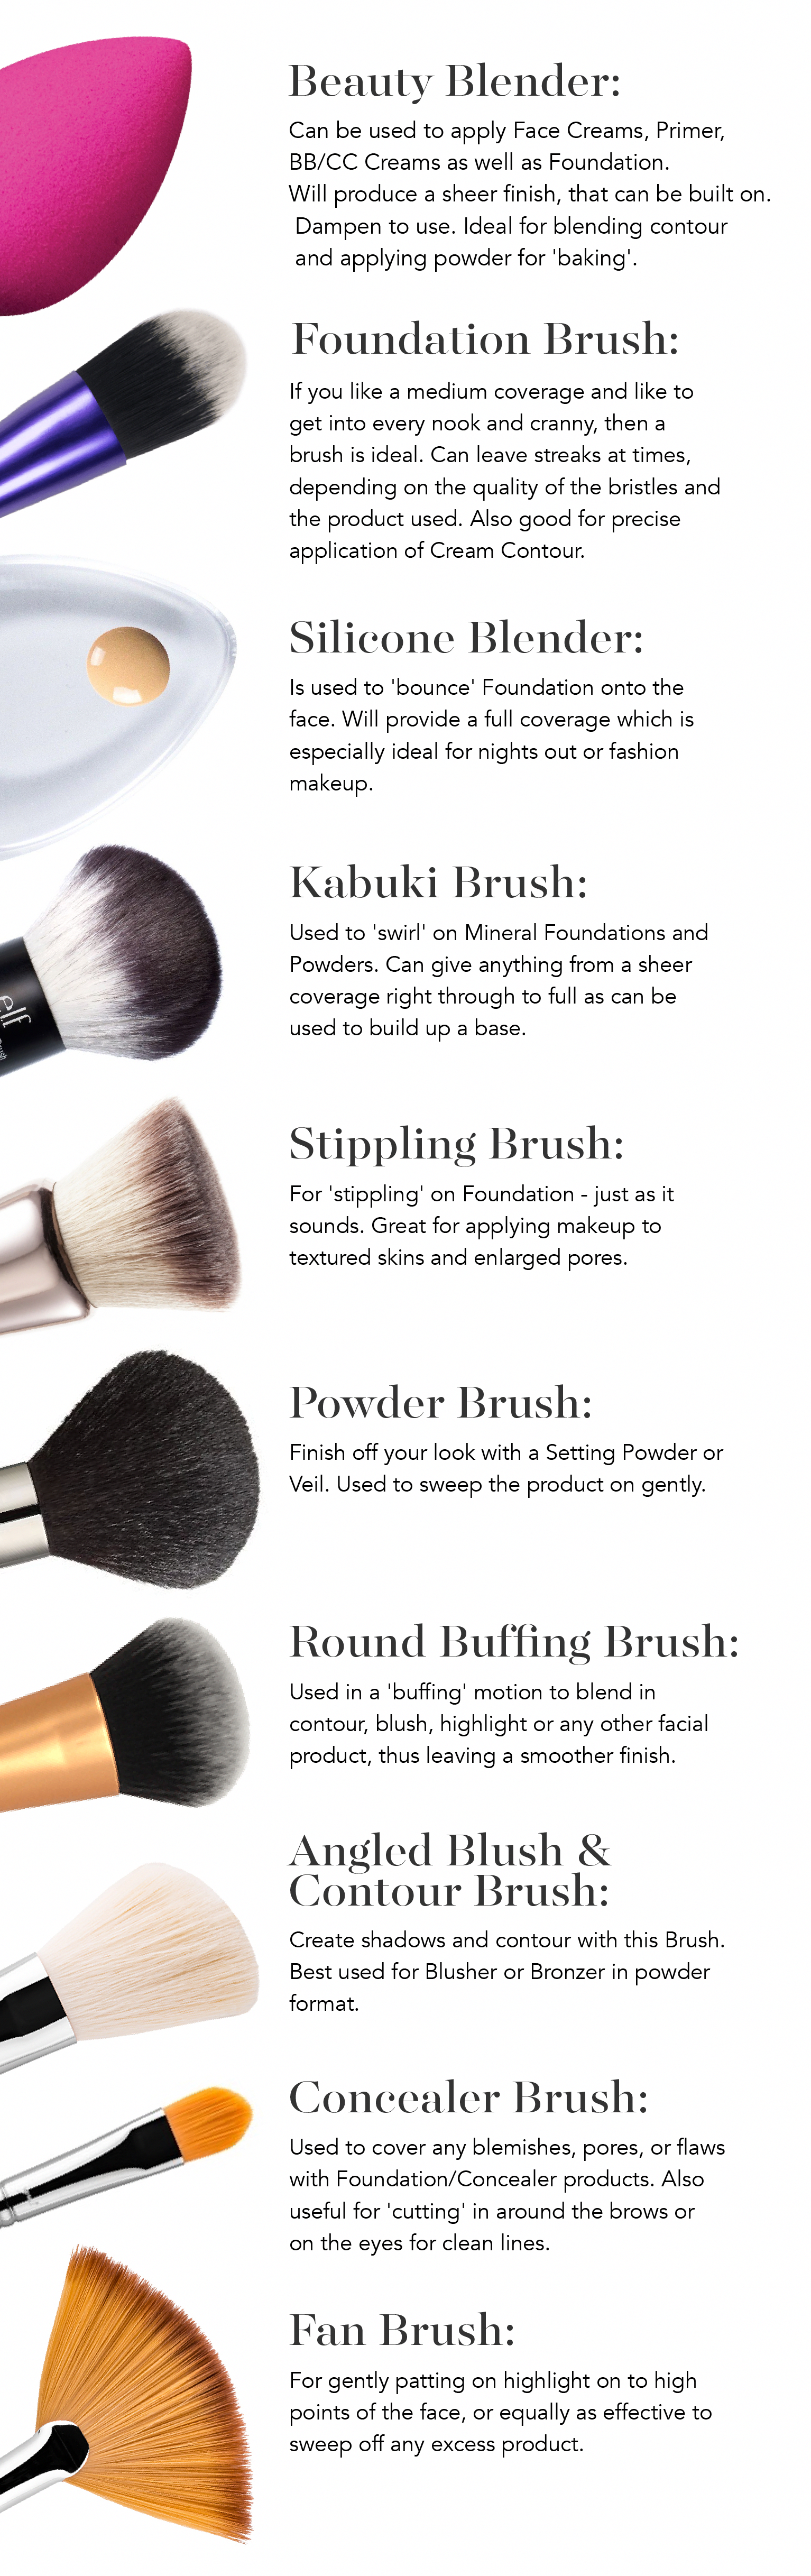 Look your best by using the right tools with our guide to